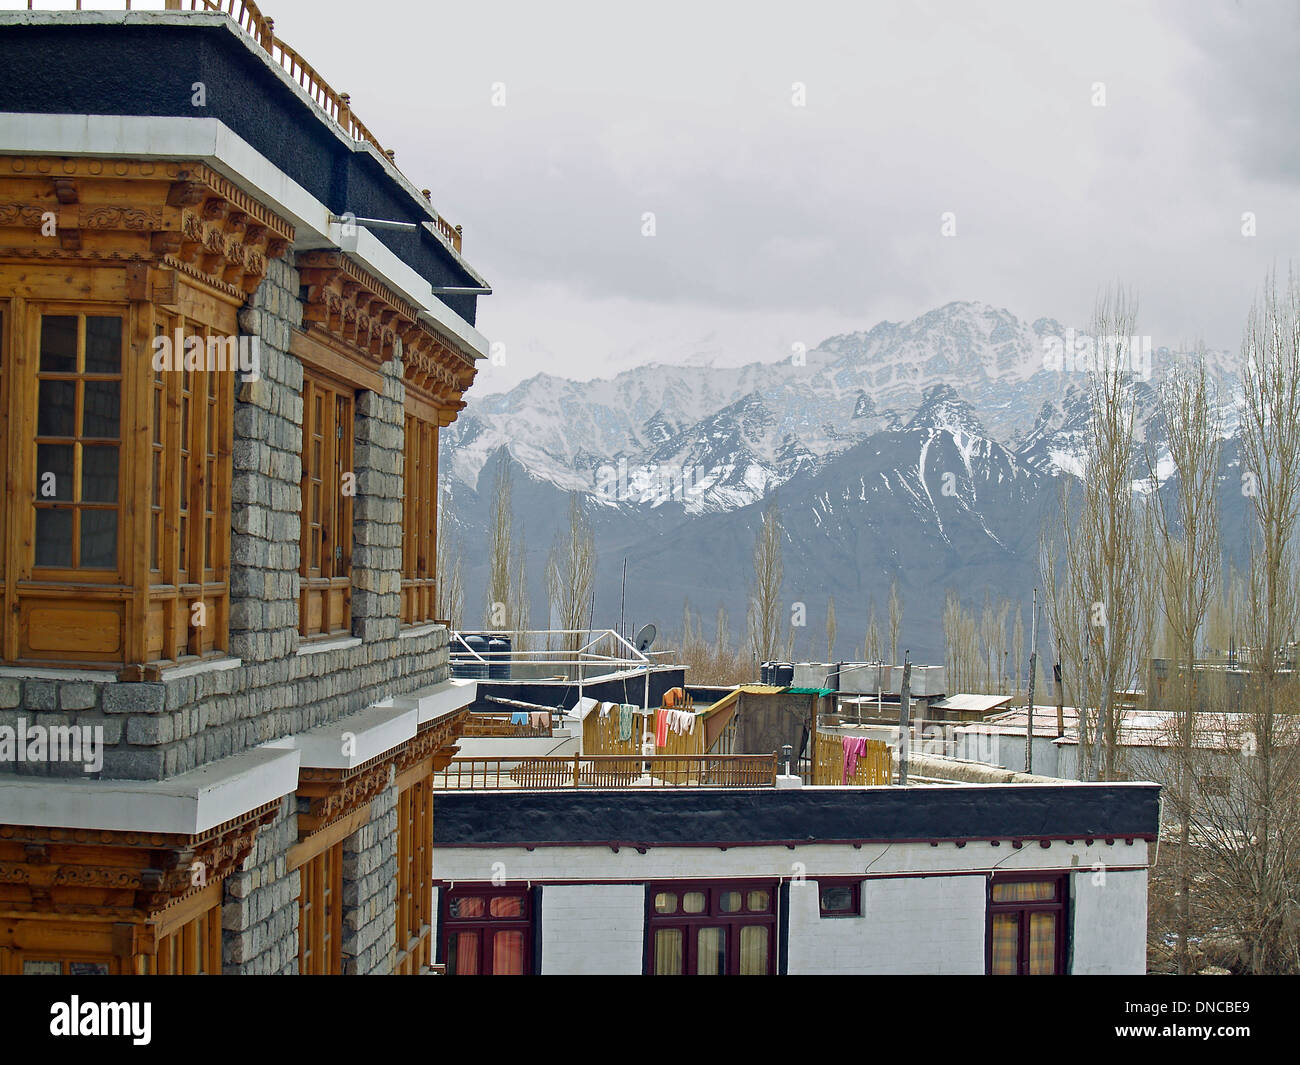 A view of the Himalayan Mountains from a hotel in Leh,Ladakh - Stock Image